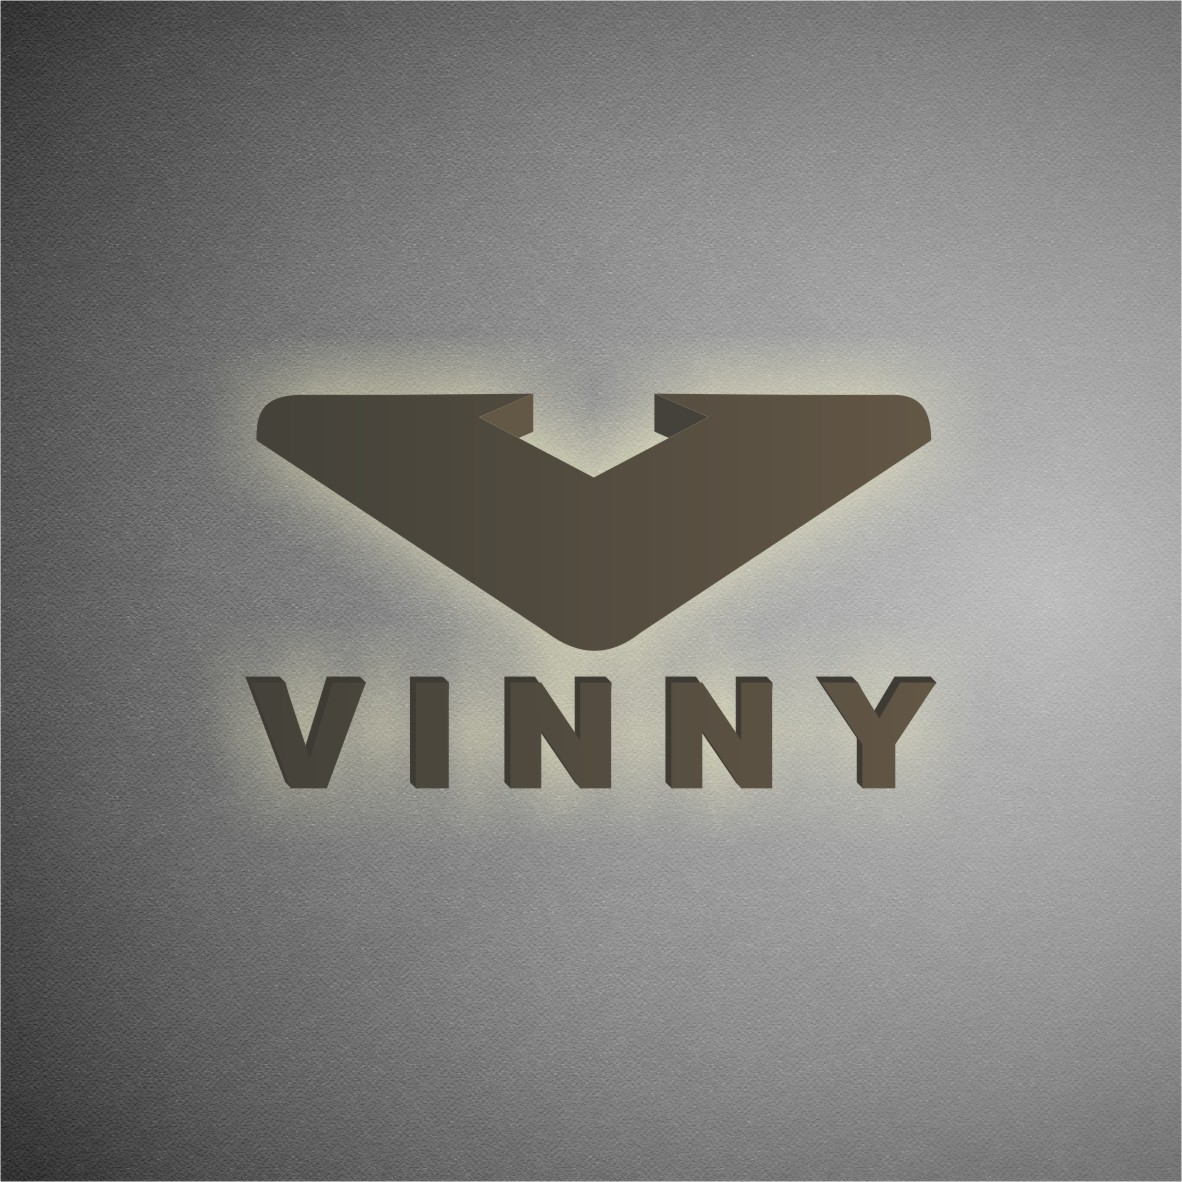 Logo Design by arteo_design - Entry No. 215 in the Logo Design Contest Unique Logo Design Wanted for Vinny.